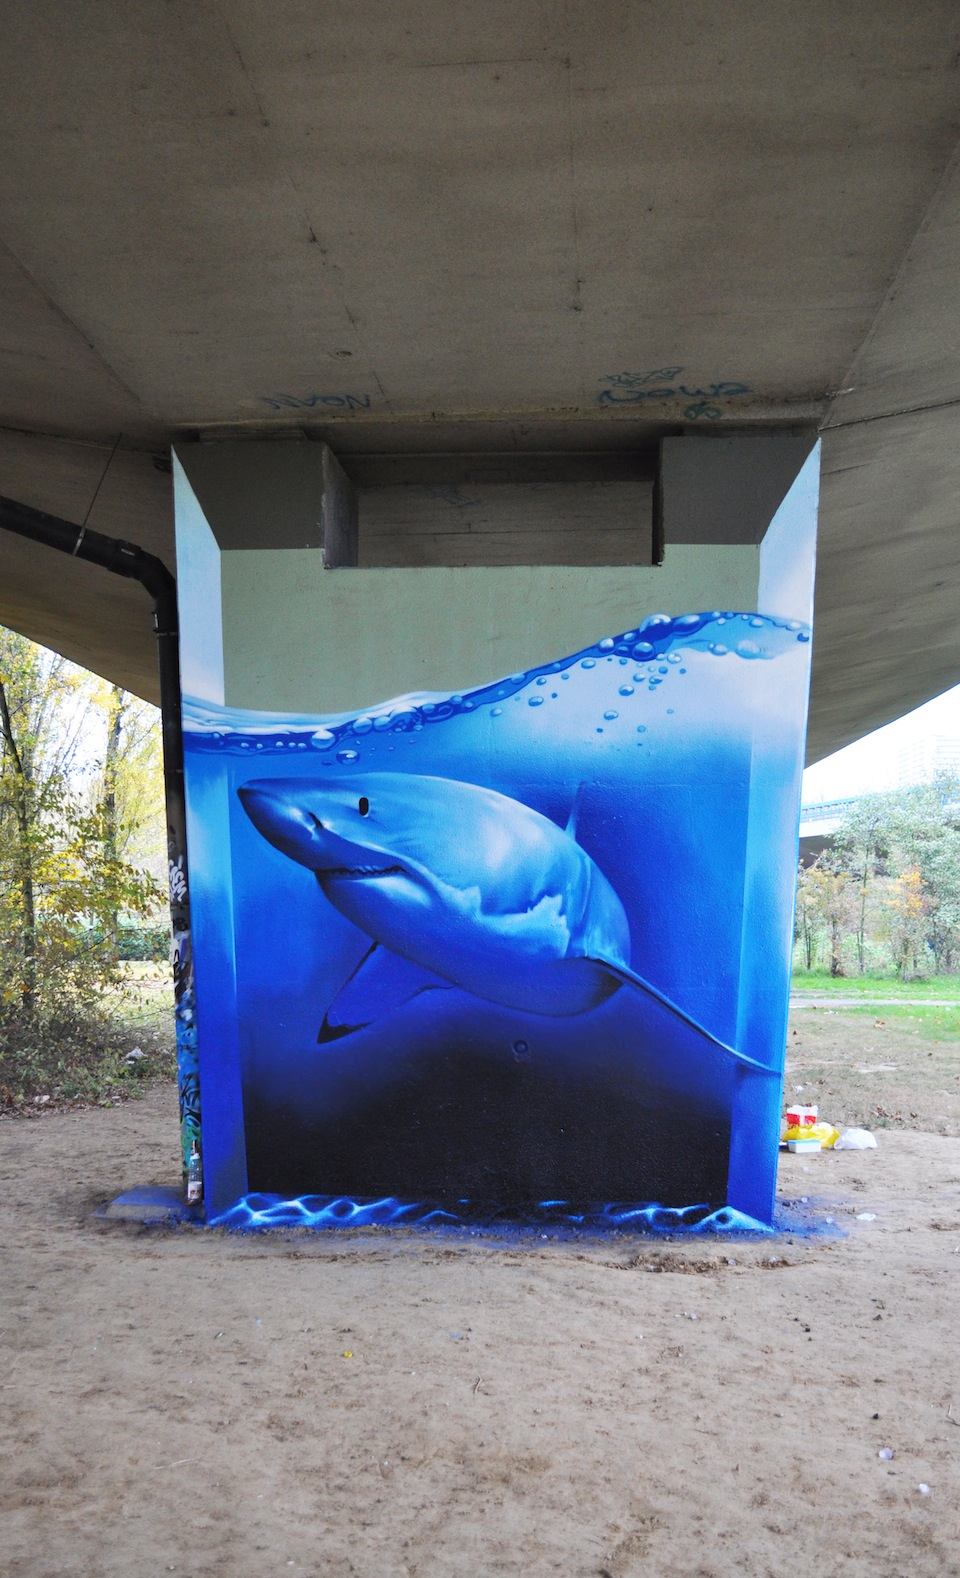 Graffiti by Smates in In Brussels, Belgium